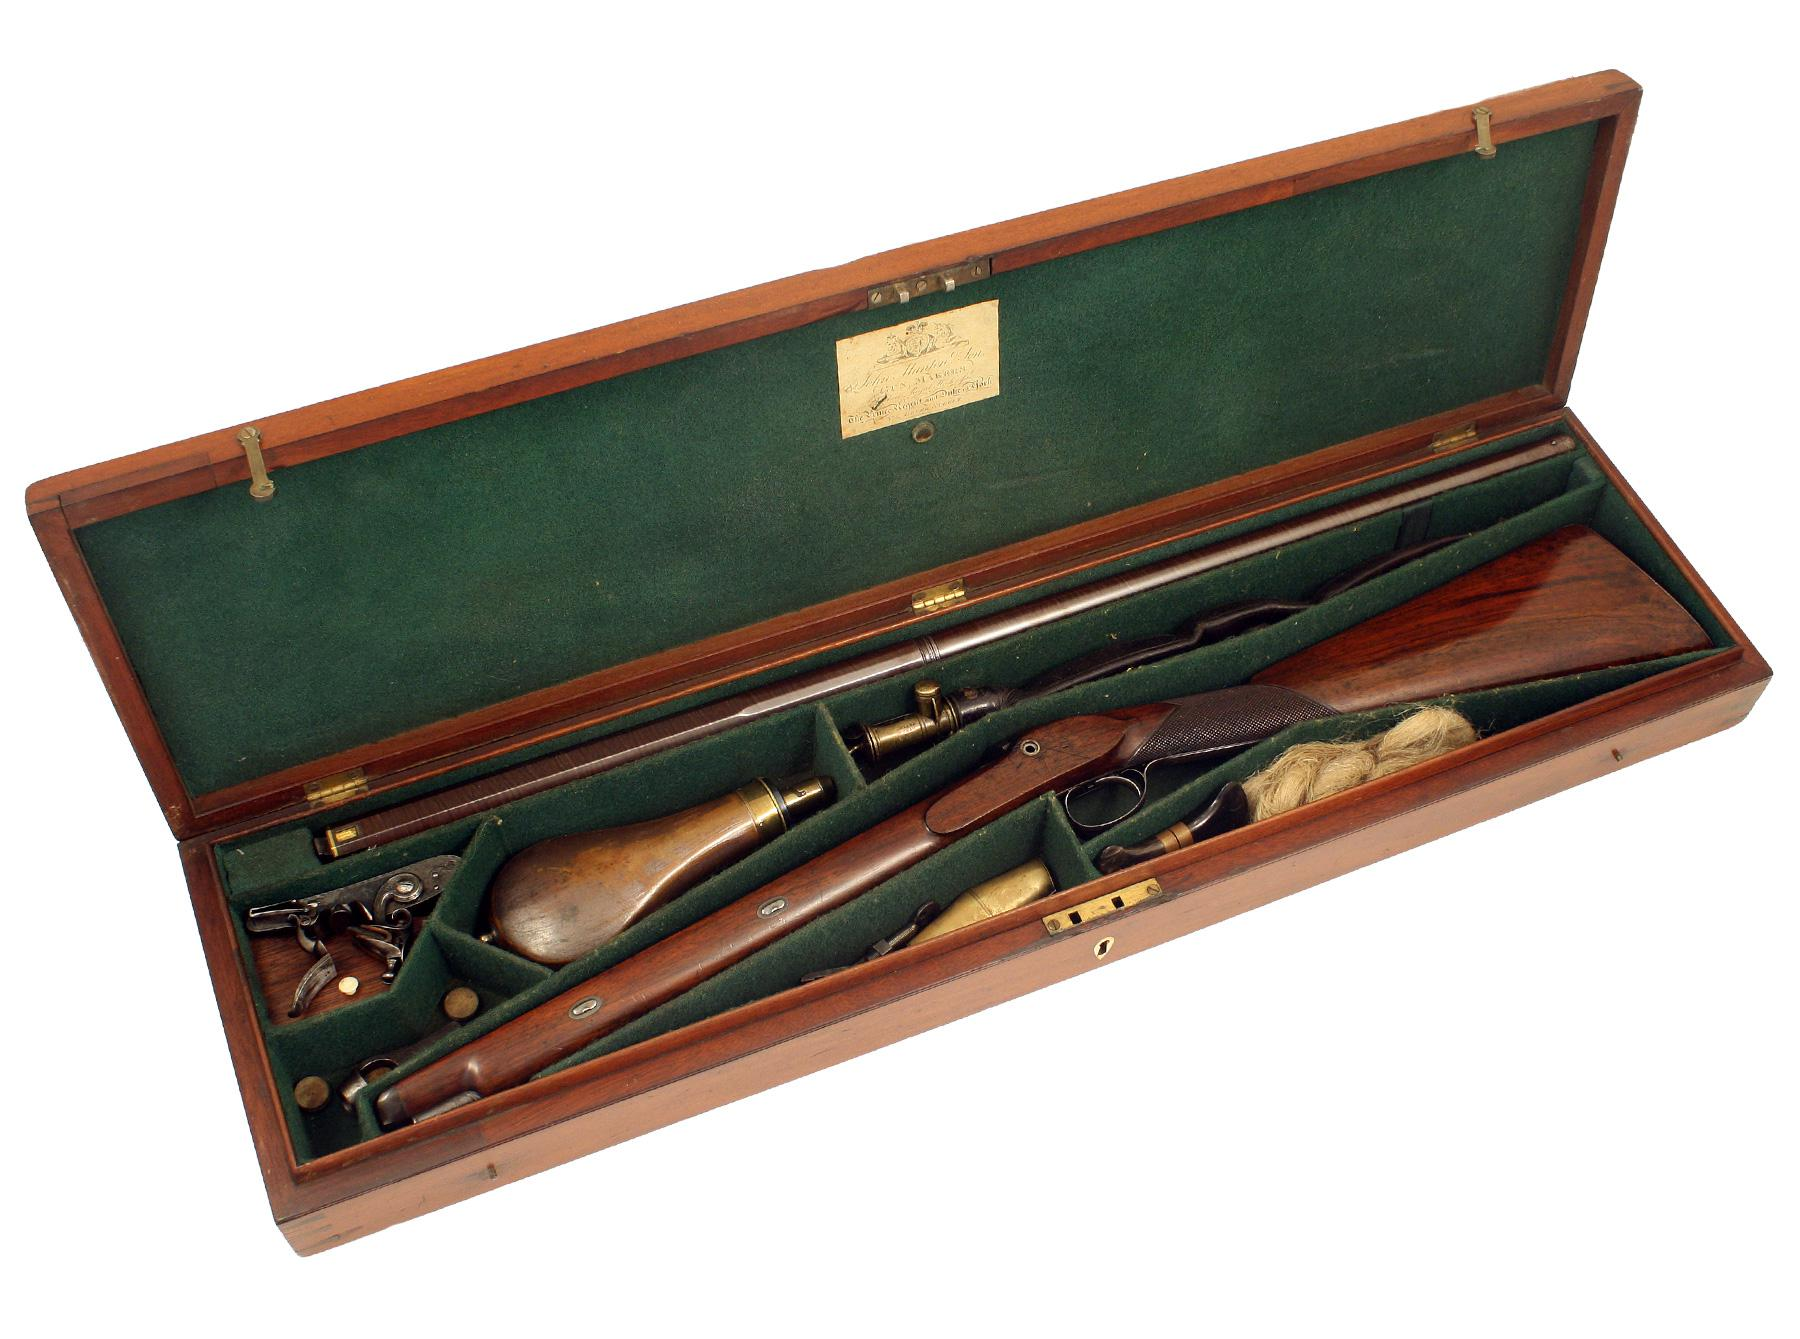 A Cased J.Manton Sporting Gun